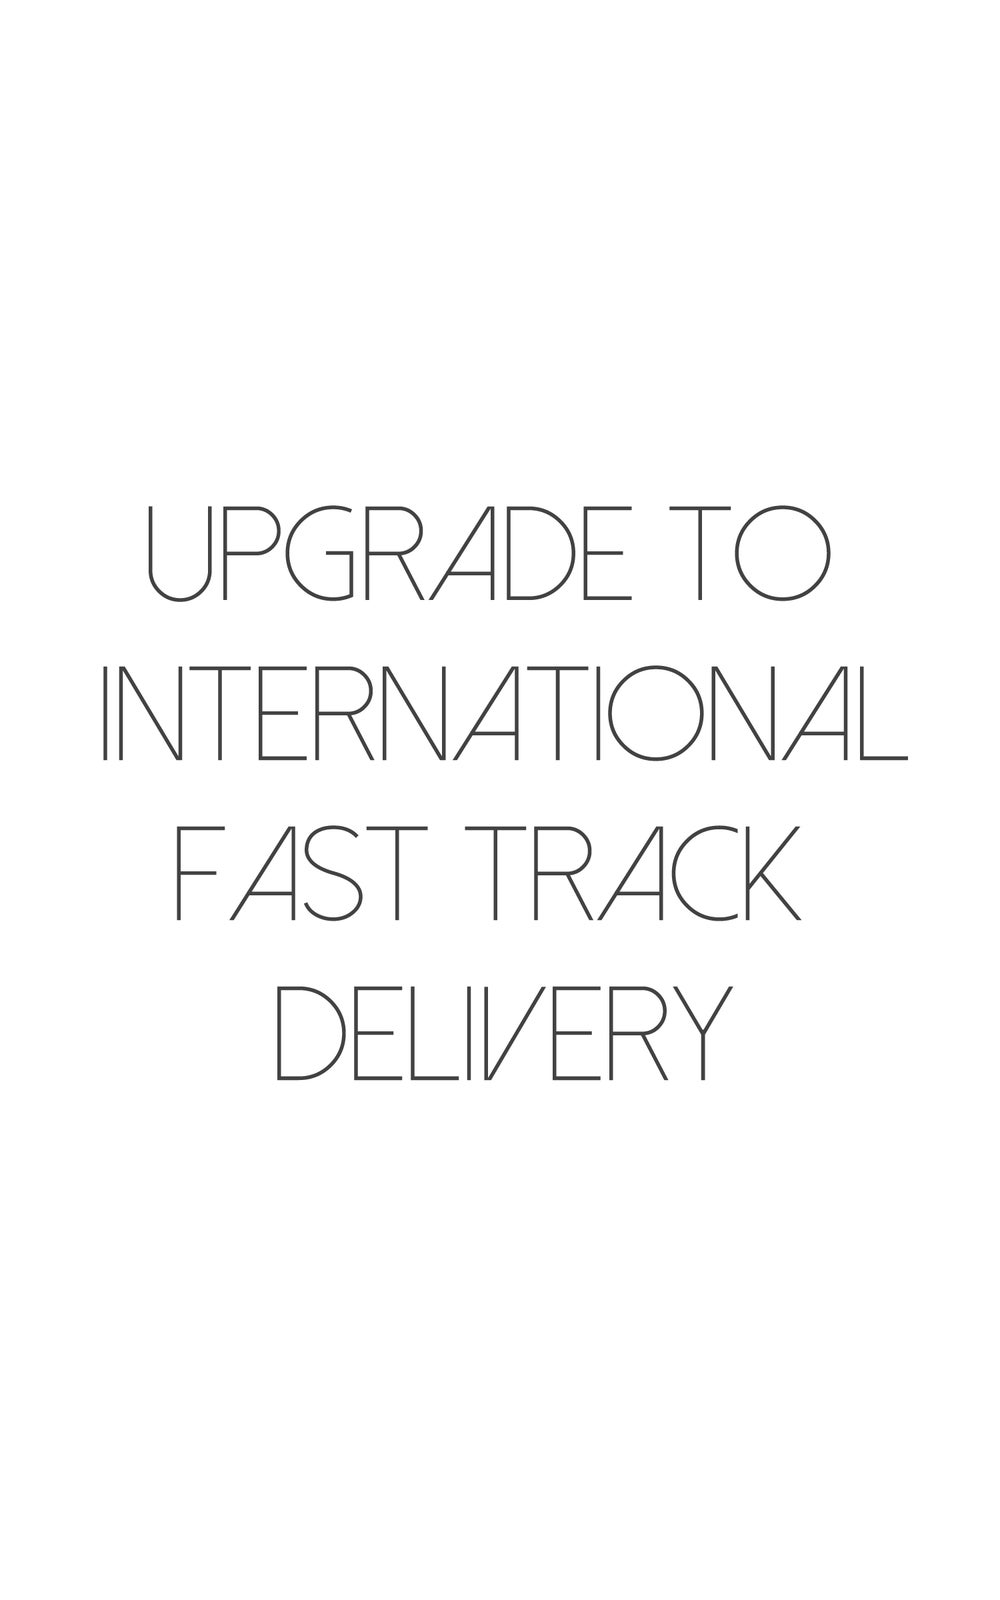 Image of Upgrade to International Fast Track Delivery